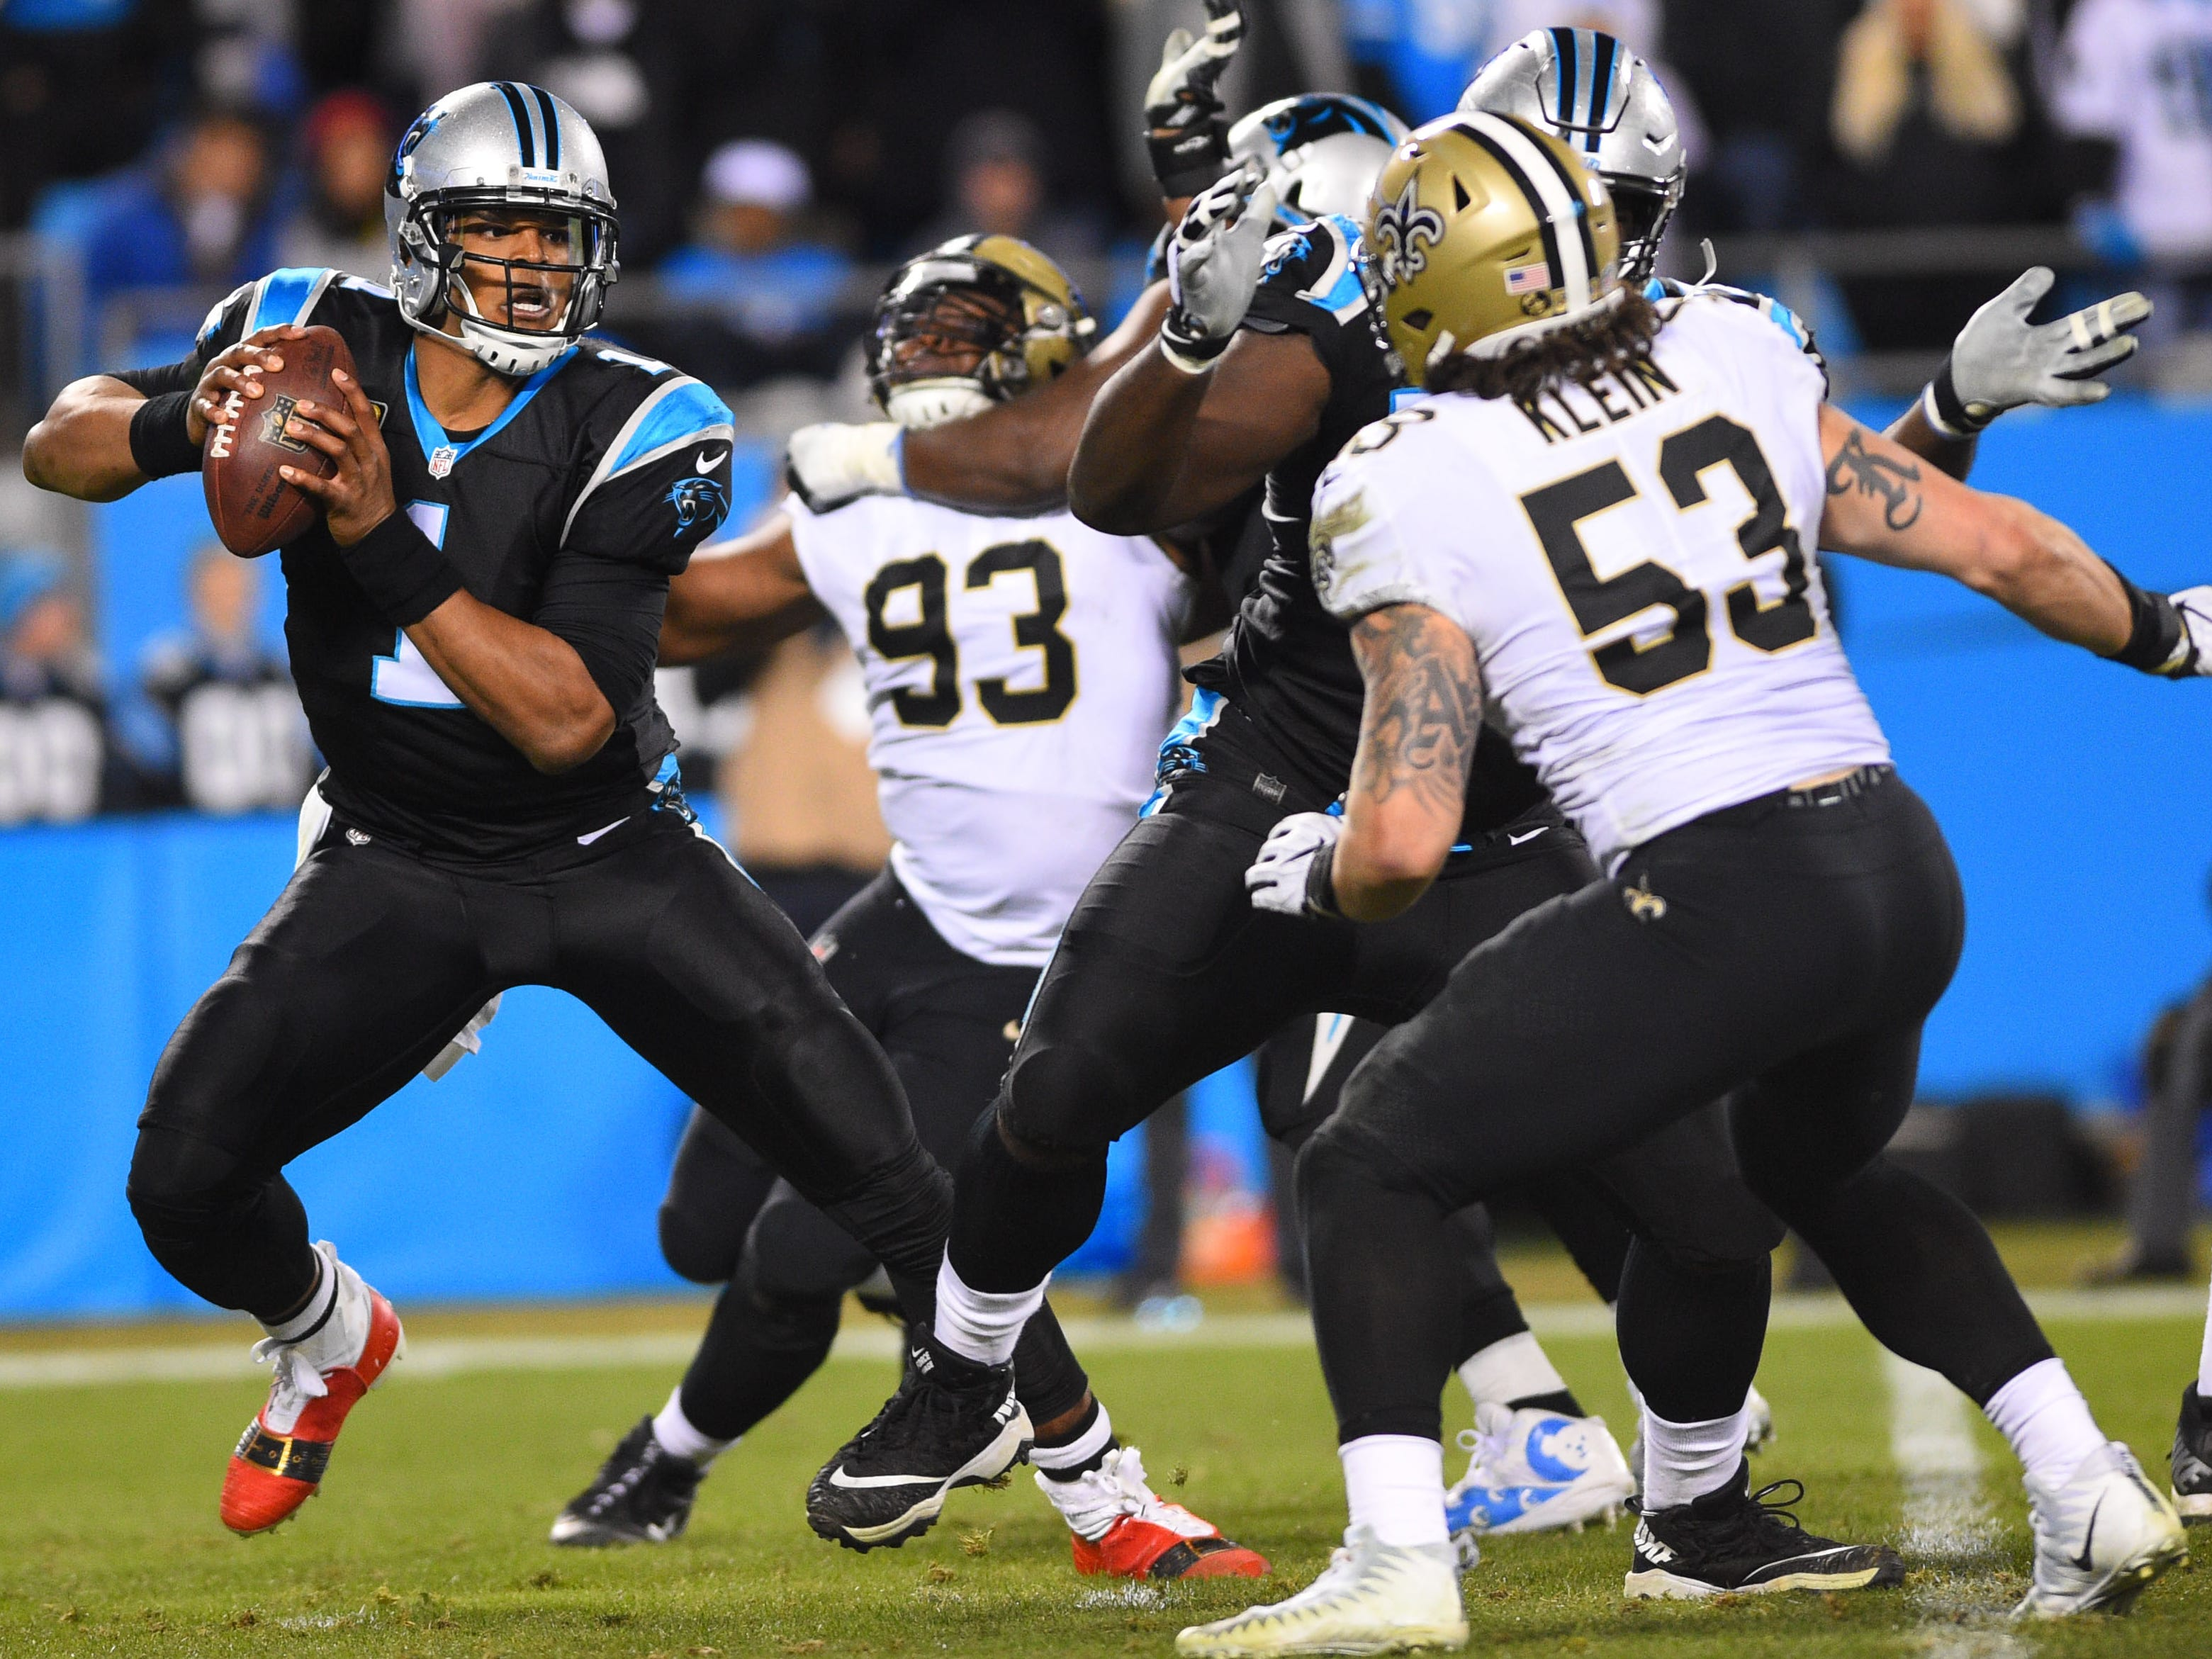 Carolina Panthers quarterback Cam Newton looks to pass as New Orleans Saints defensive tackle David Onyemata (93) and outside linebacker A.J. Klein (53) pressure in the second quarter at Bank of America Stadium.